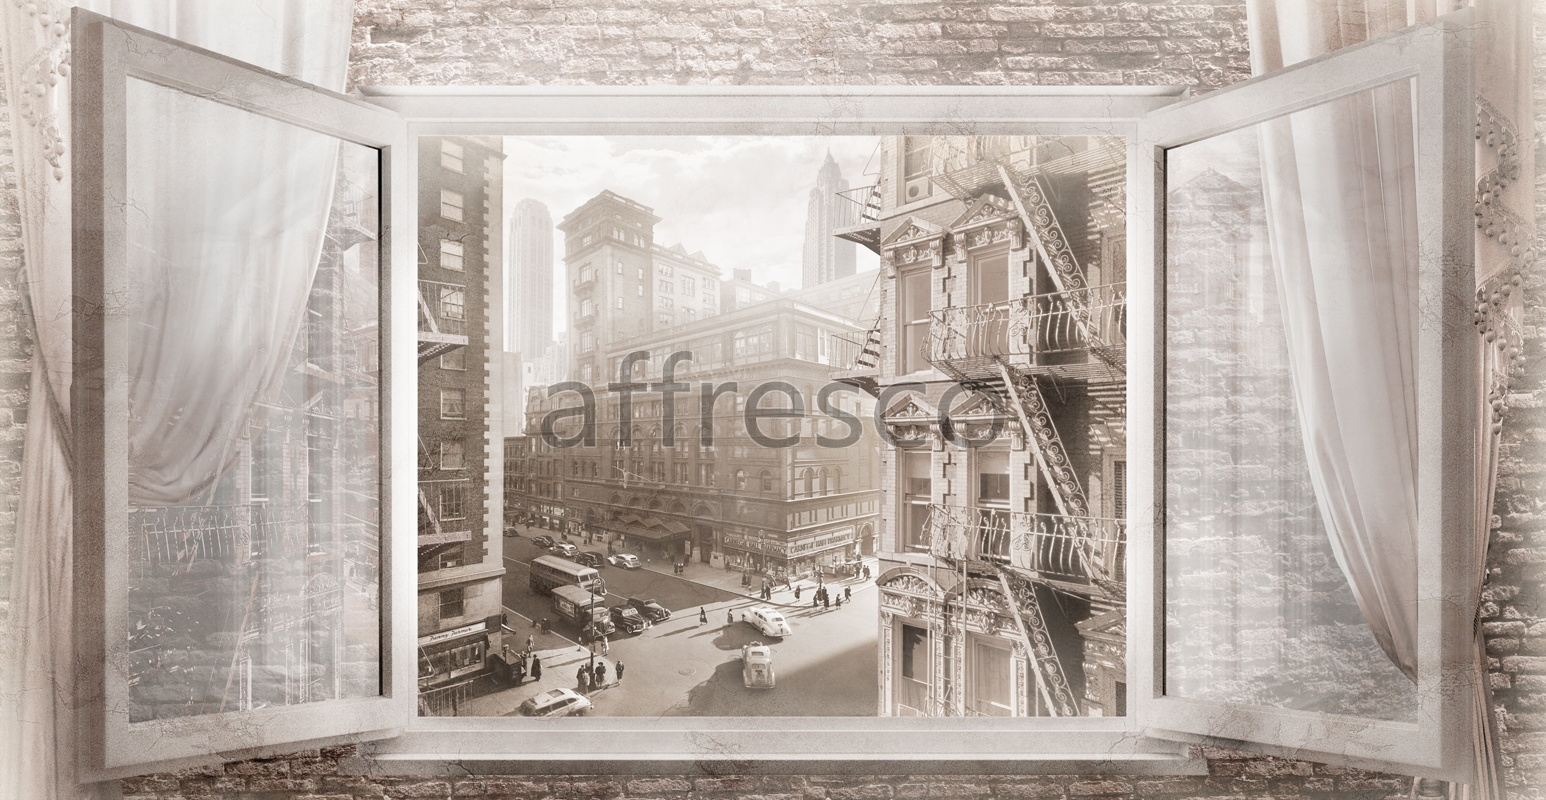 4967 | Pictures of Cities  | View of the city from the window | Affresco Factory